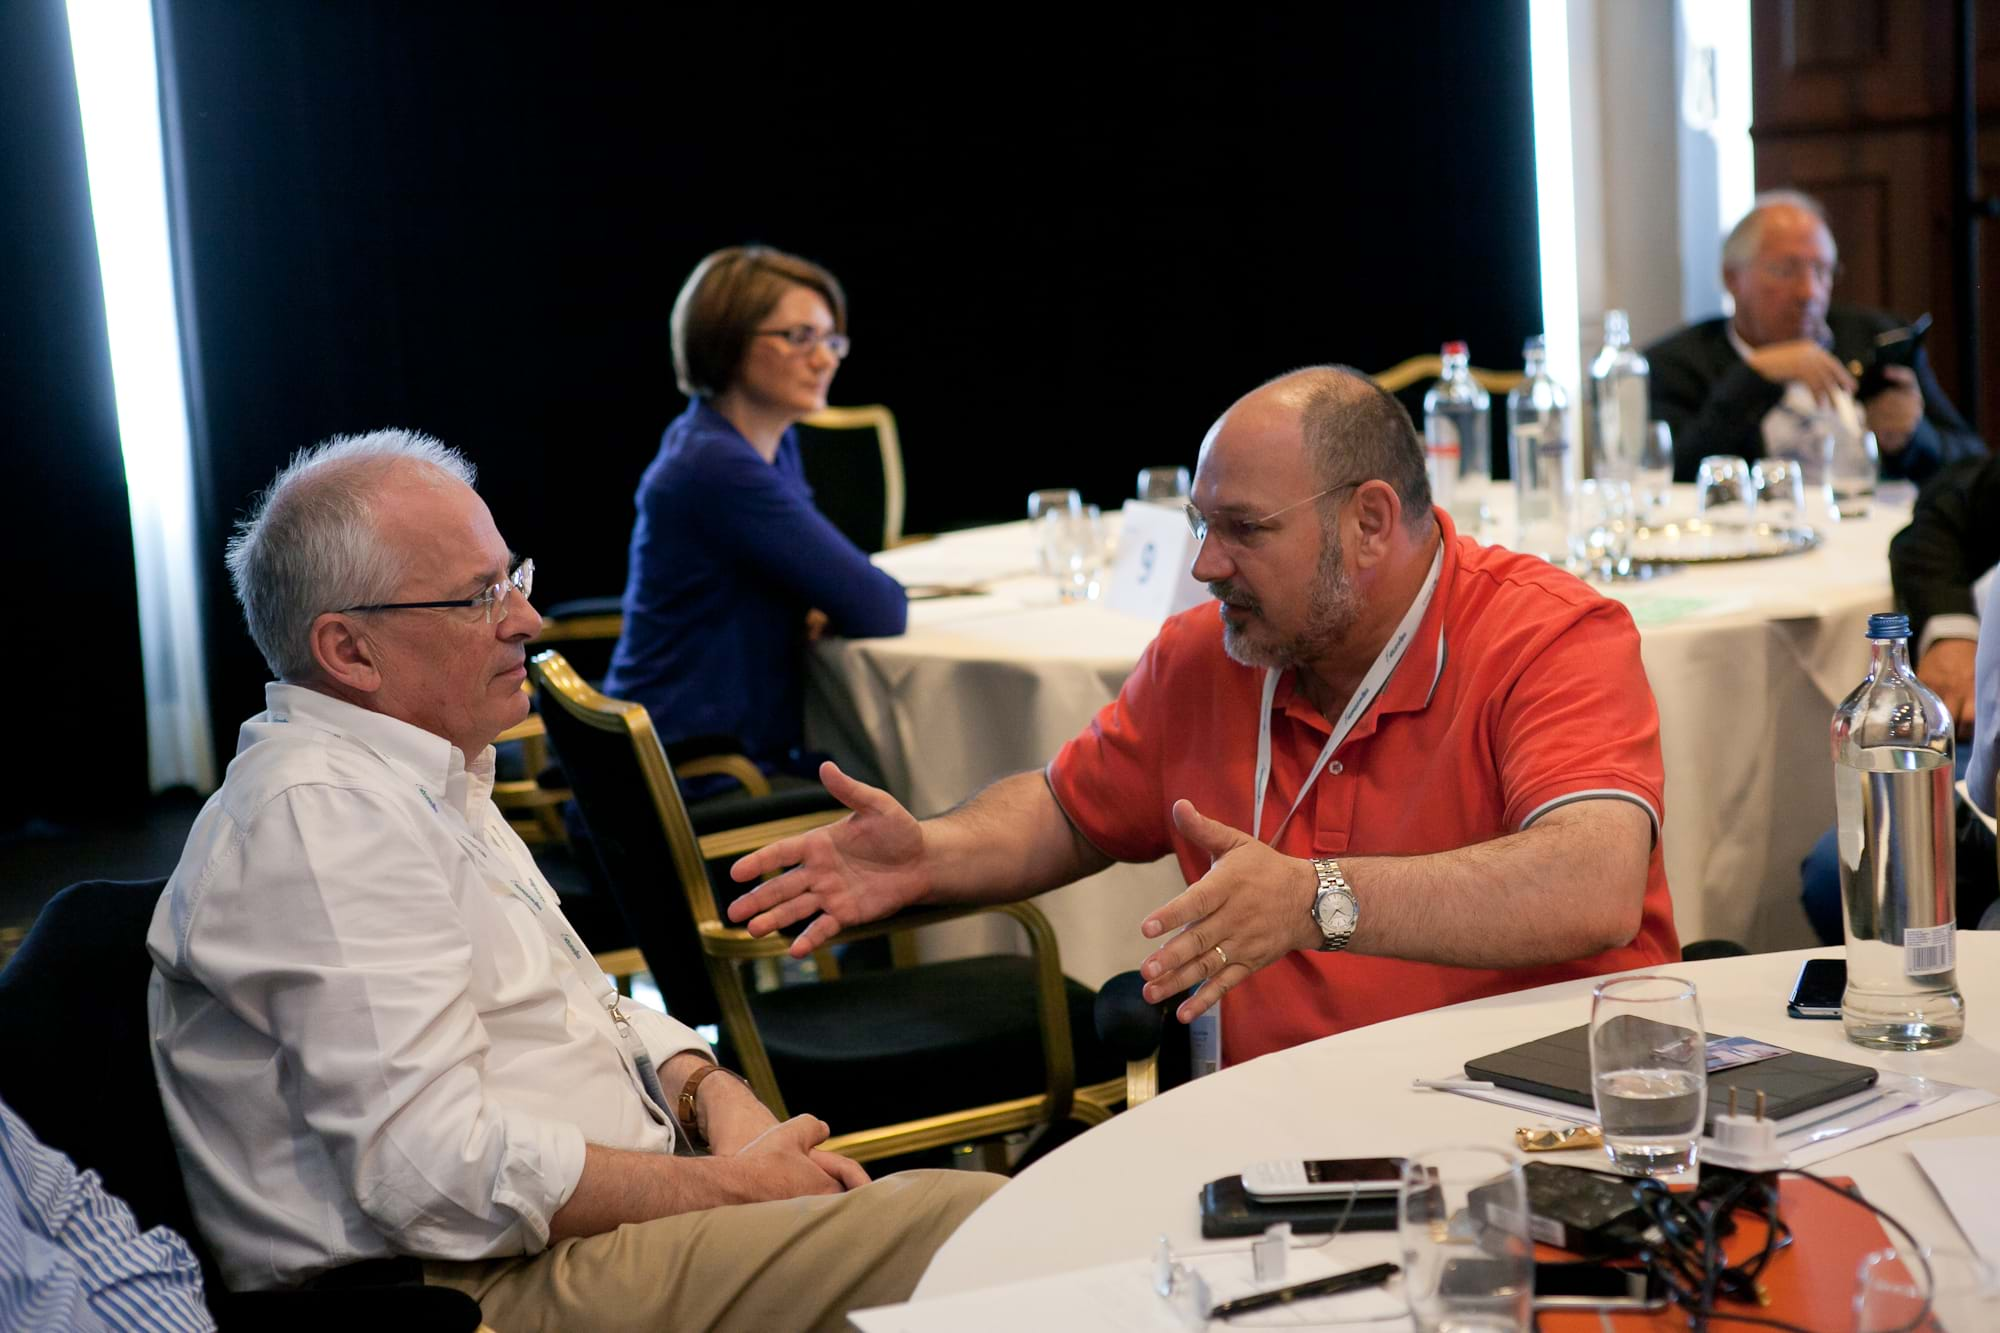 MGI World Delegates Collaboration discussion 12 MGI European Area Meeting, the Netherlands 2016